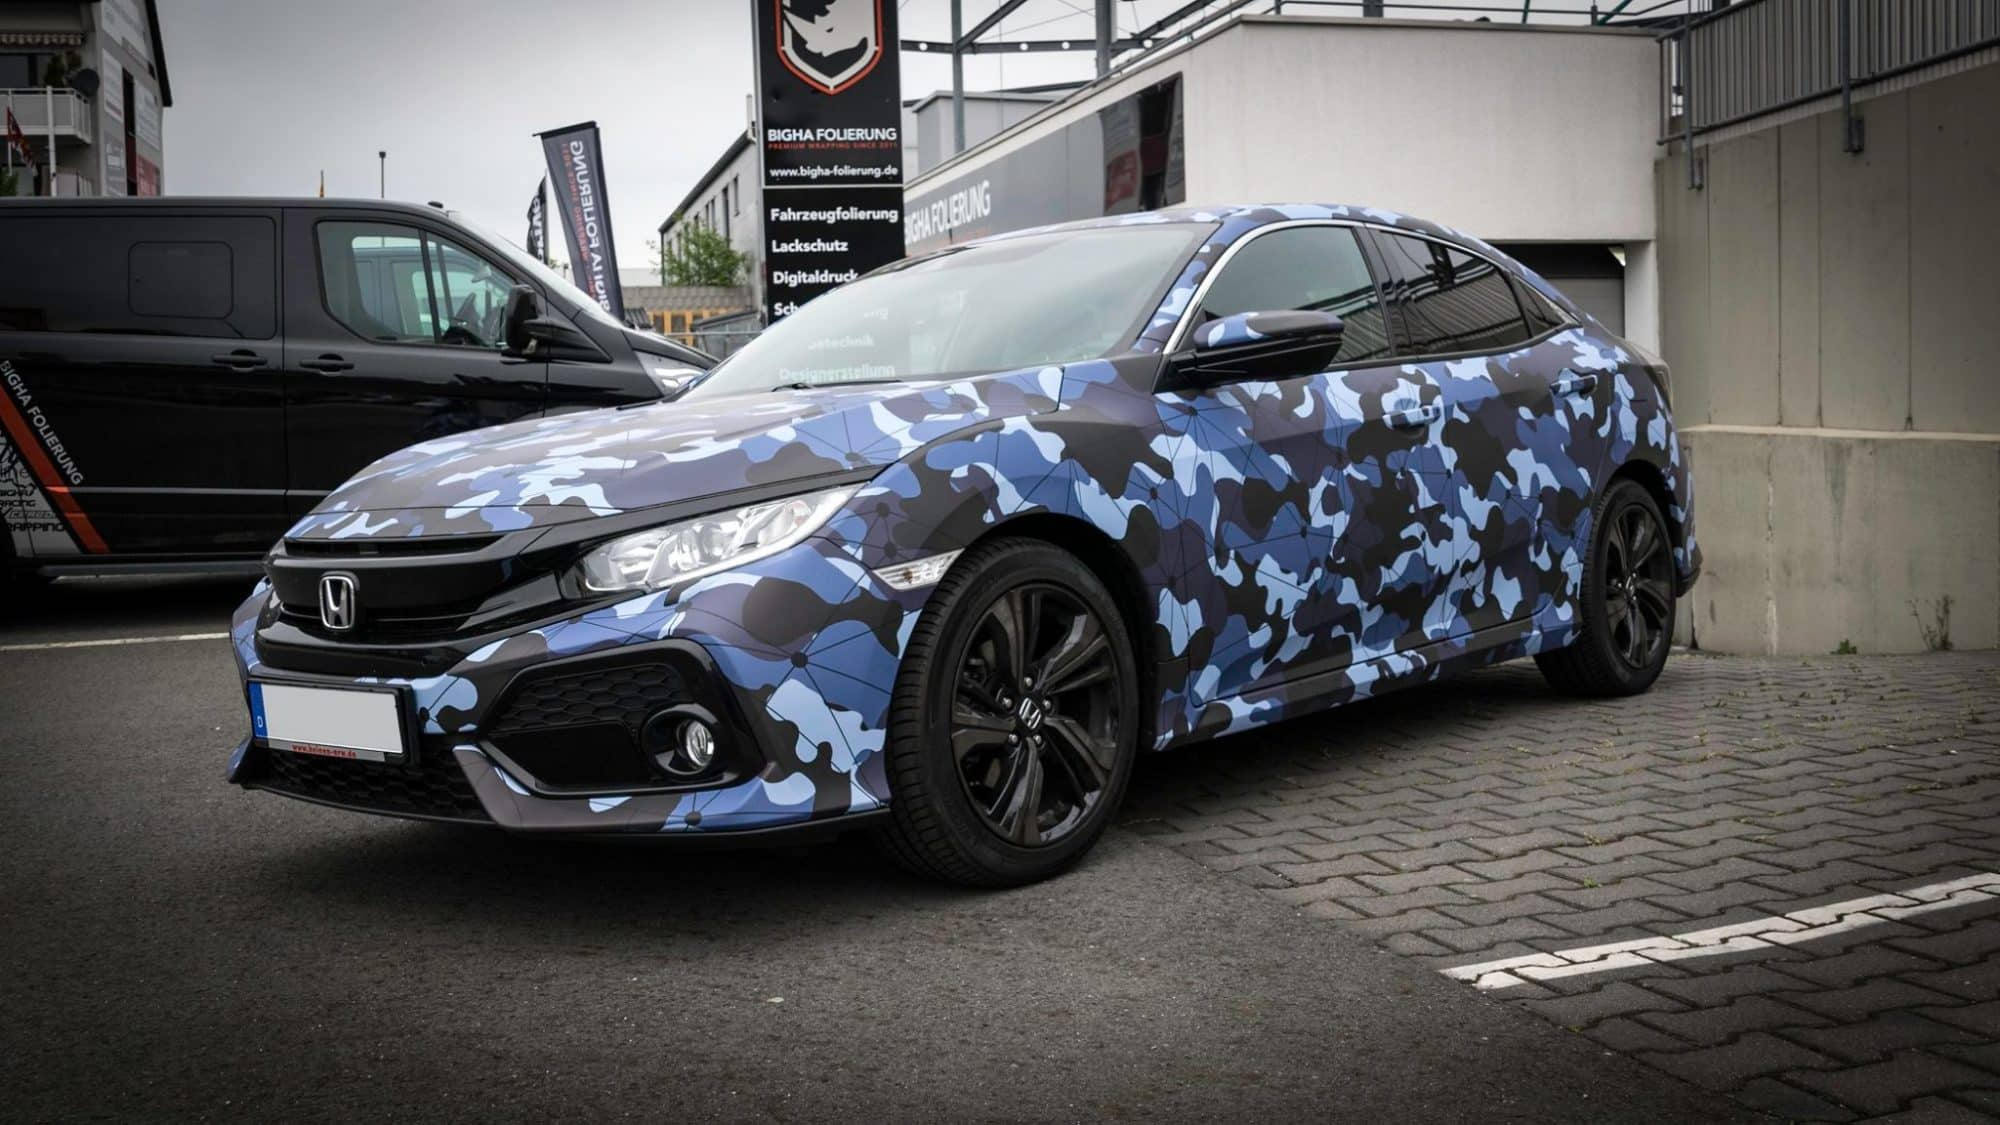 Honda Civic Folierung Digitaldruck Camouflage